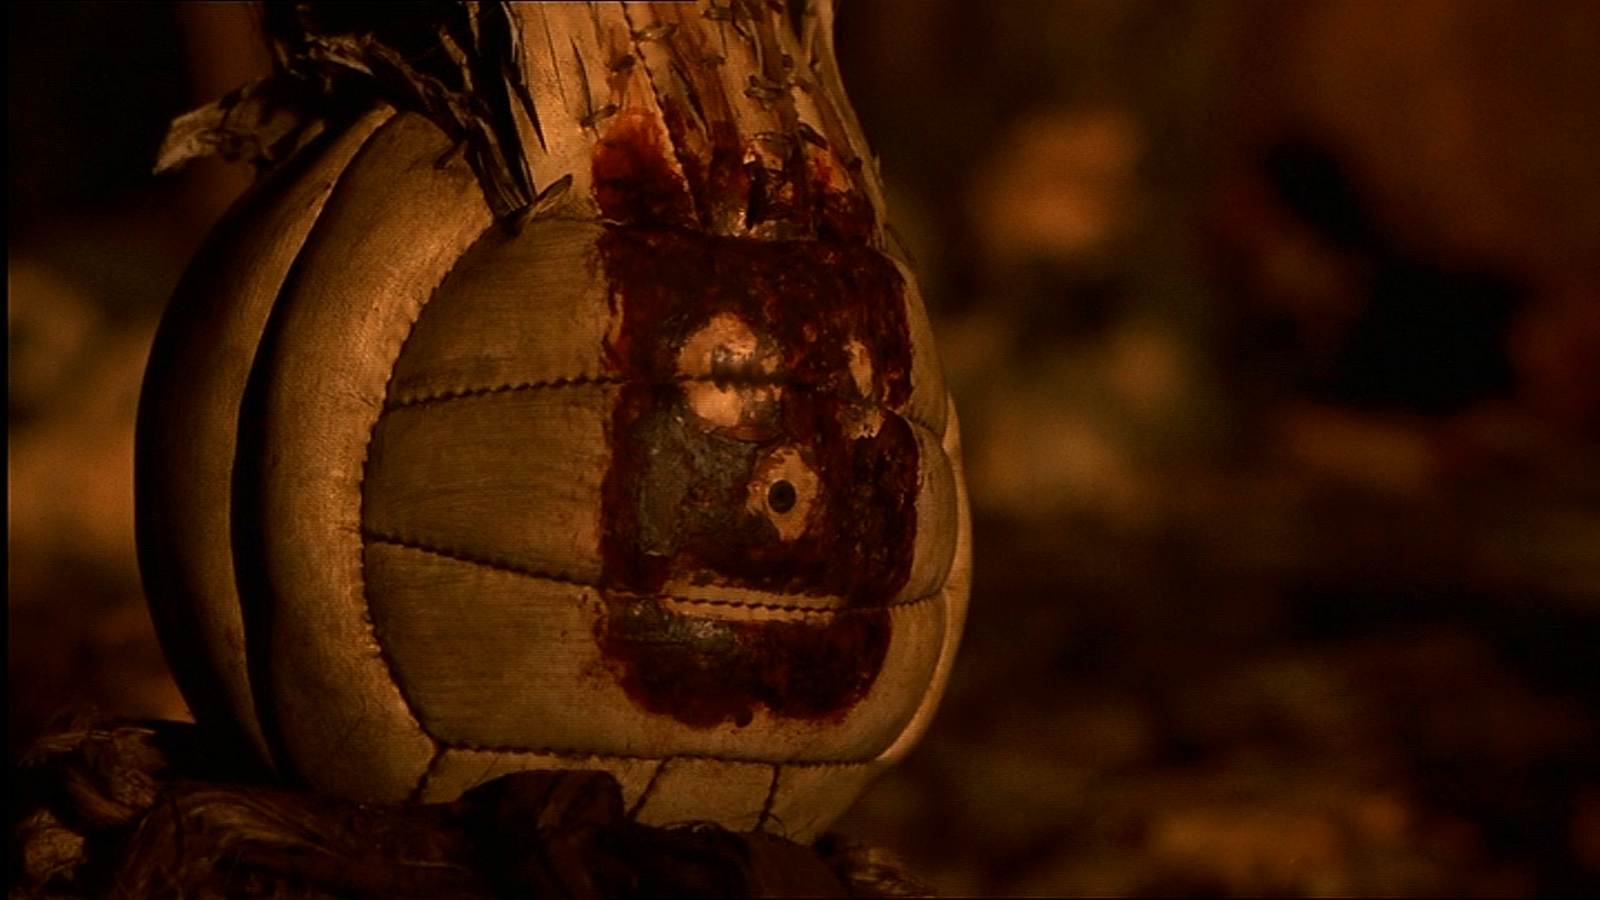 TOM_HANKS_CAST_AWAY_WILSON